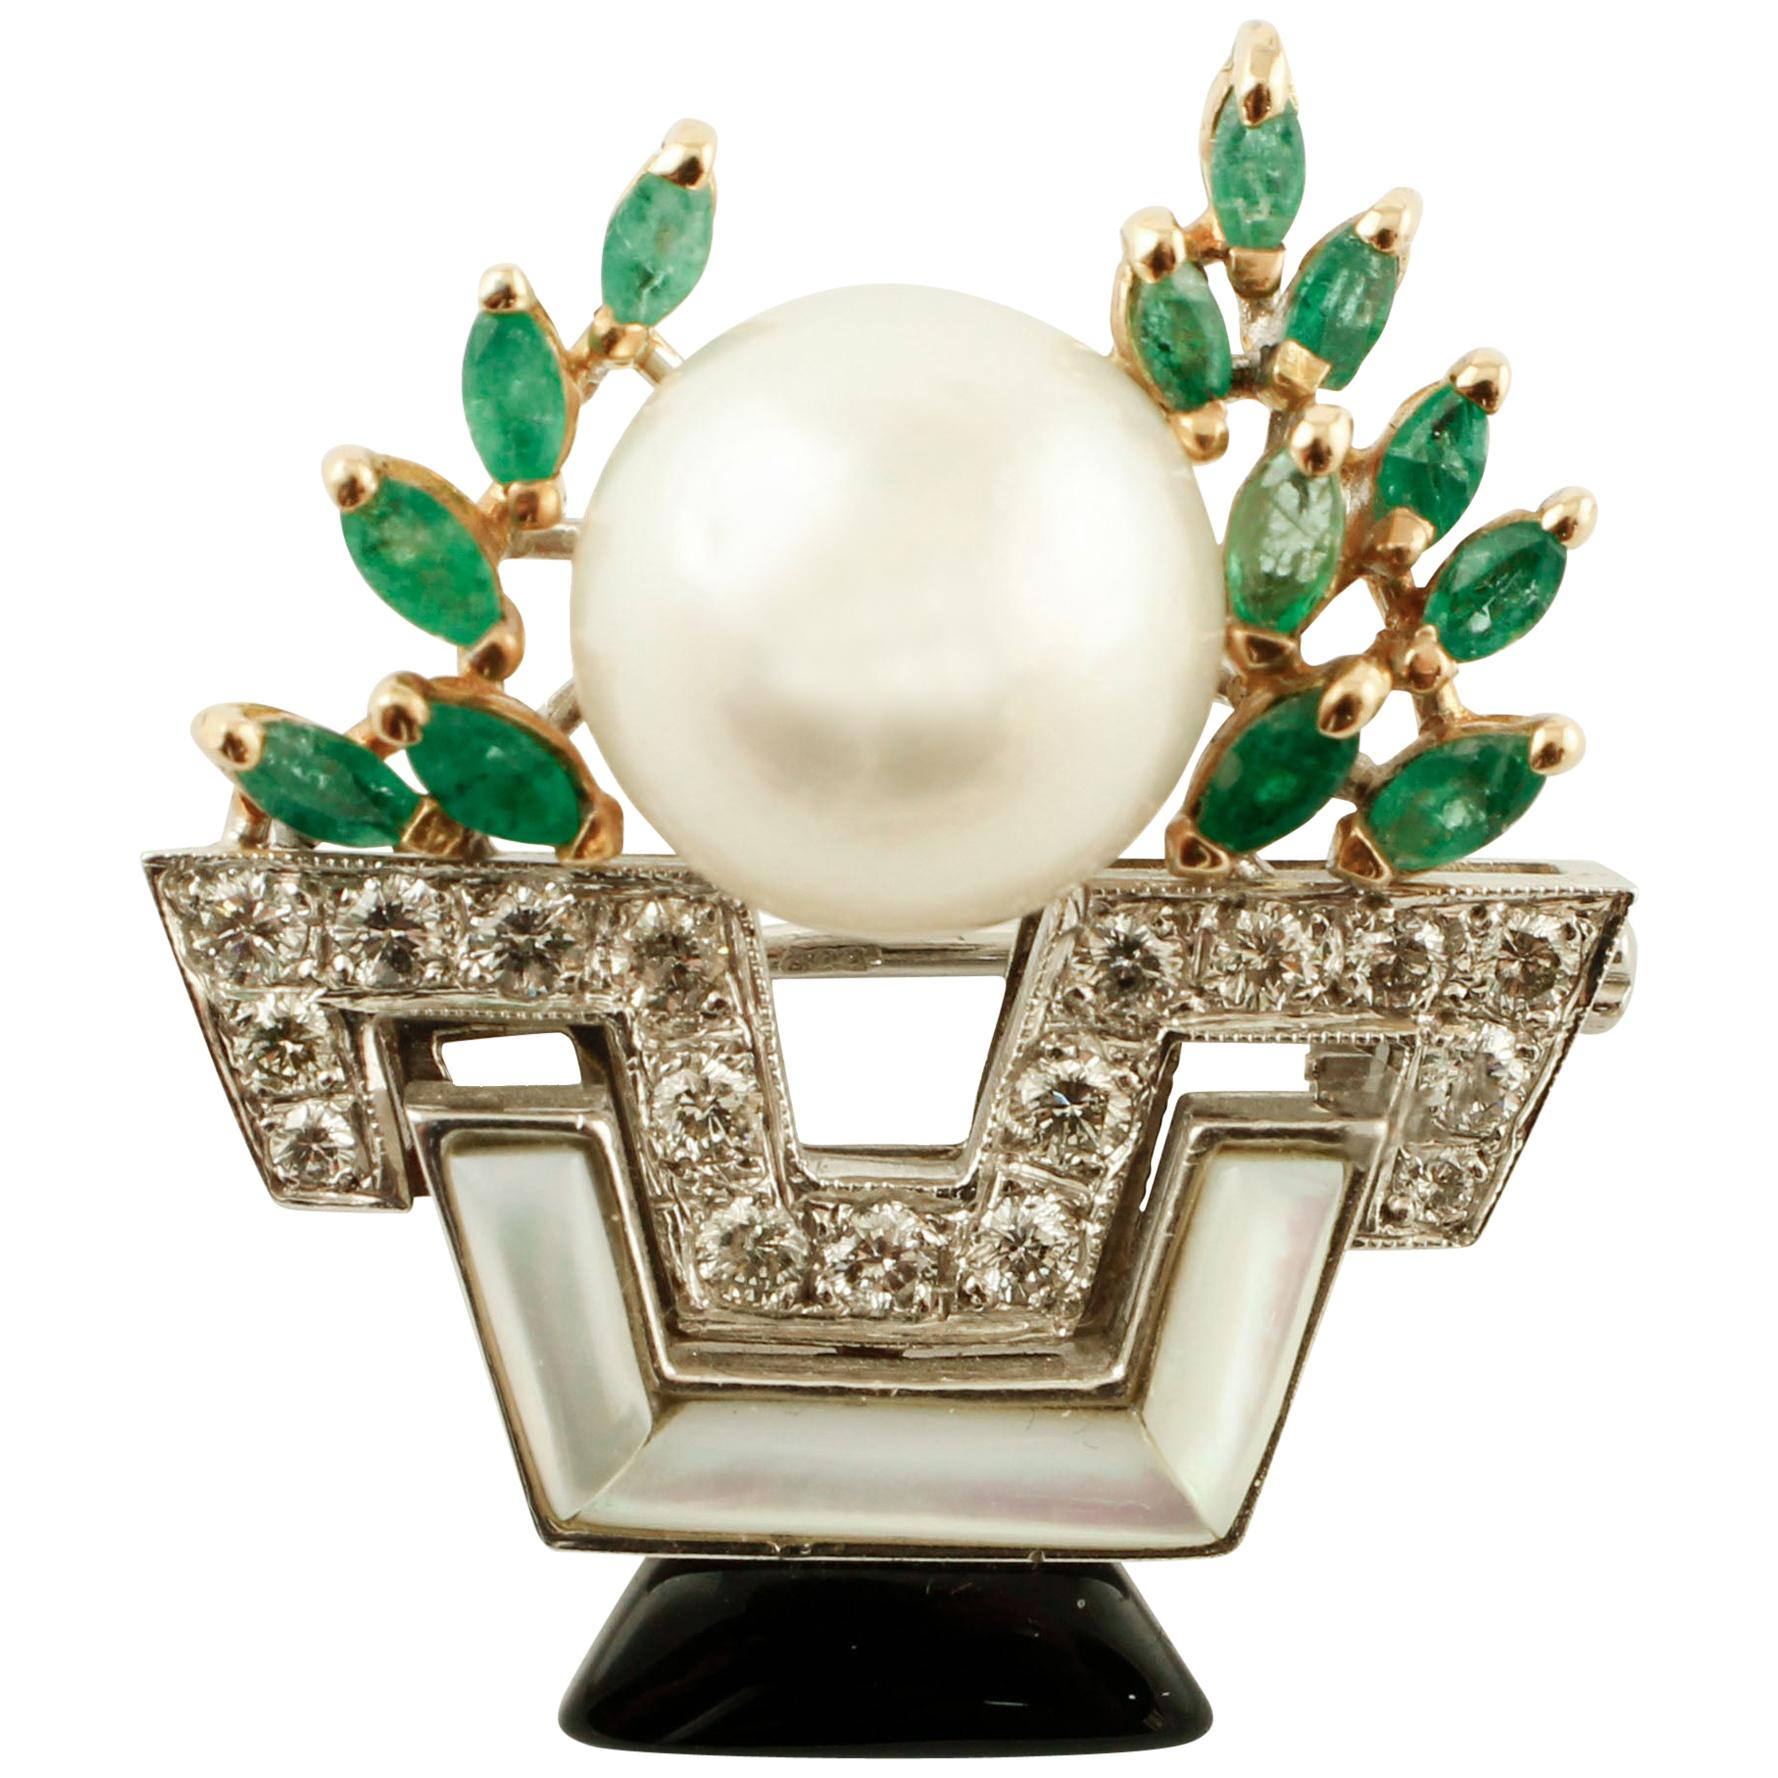 Diamonds,South Sea Pearl,Emeralds,Onyx,Mother of Pearl, 14k Gold, Brooch/Pendant